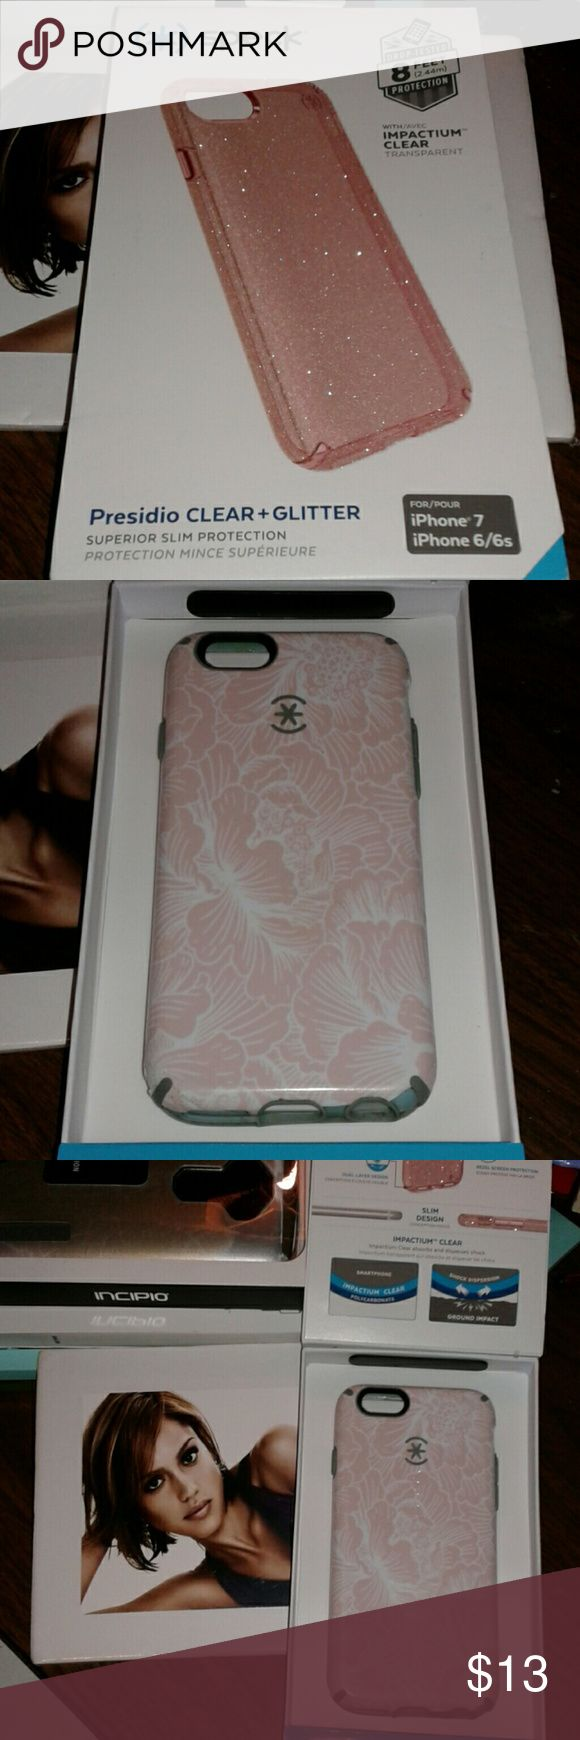 Speck Superior Slim Protection Gently used iPhone 7/iPhone 6/6s Case. Accessories Phone Cases